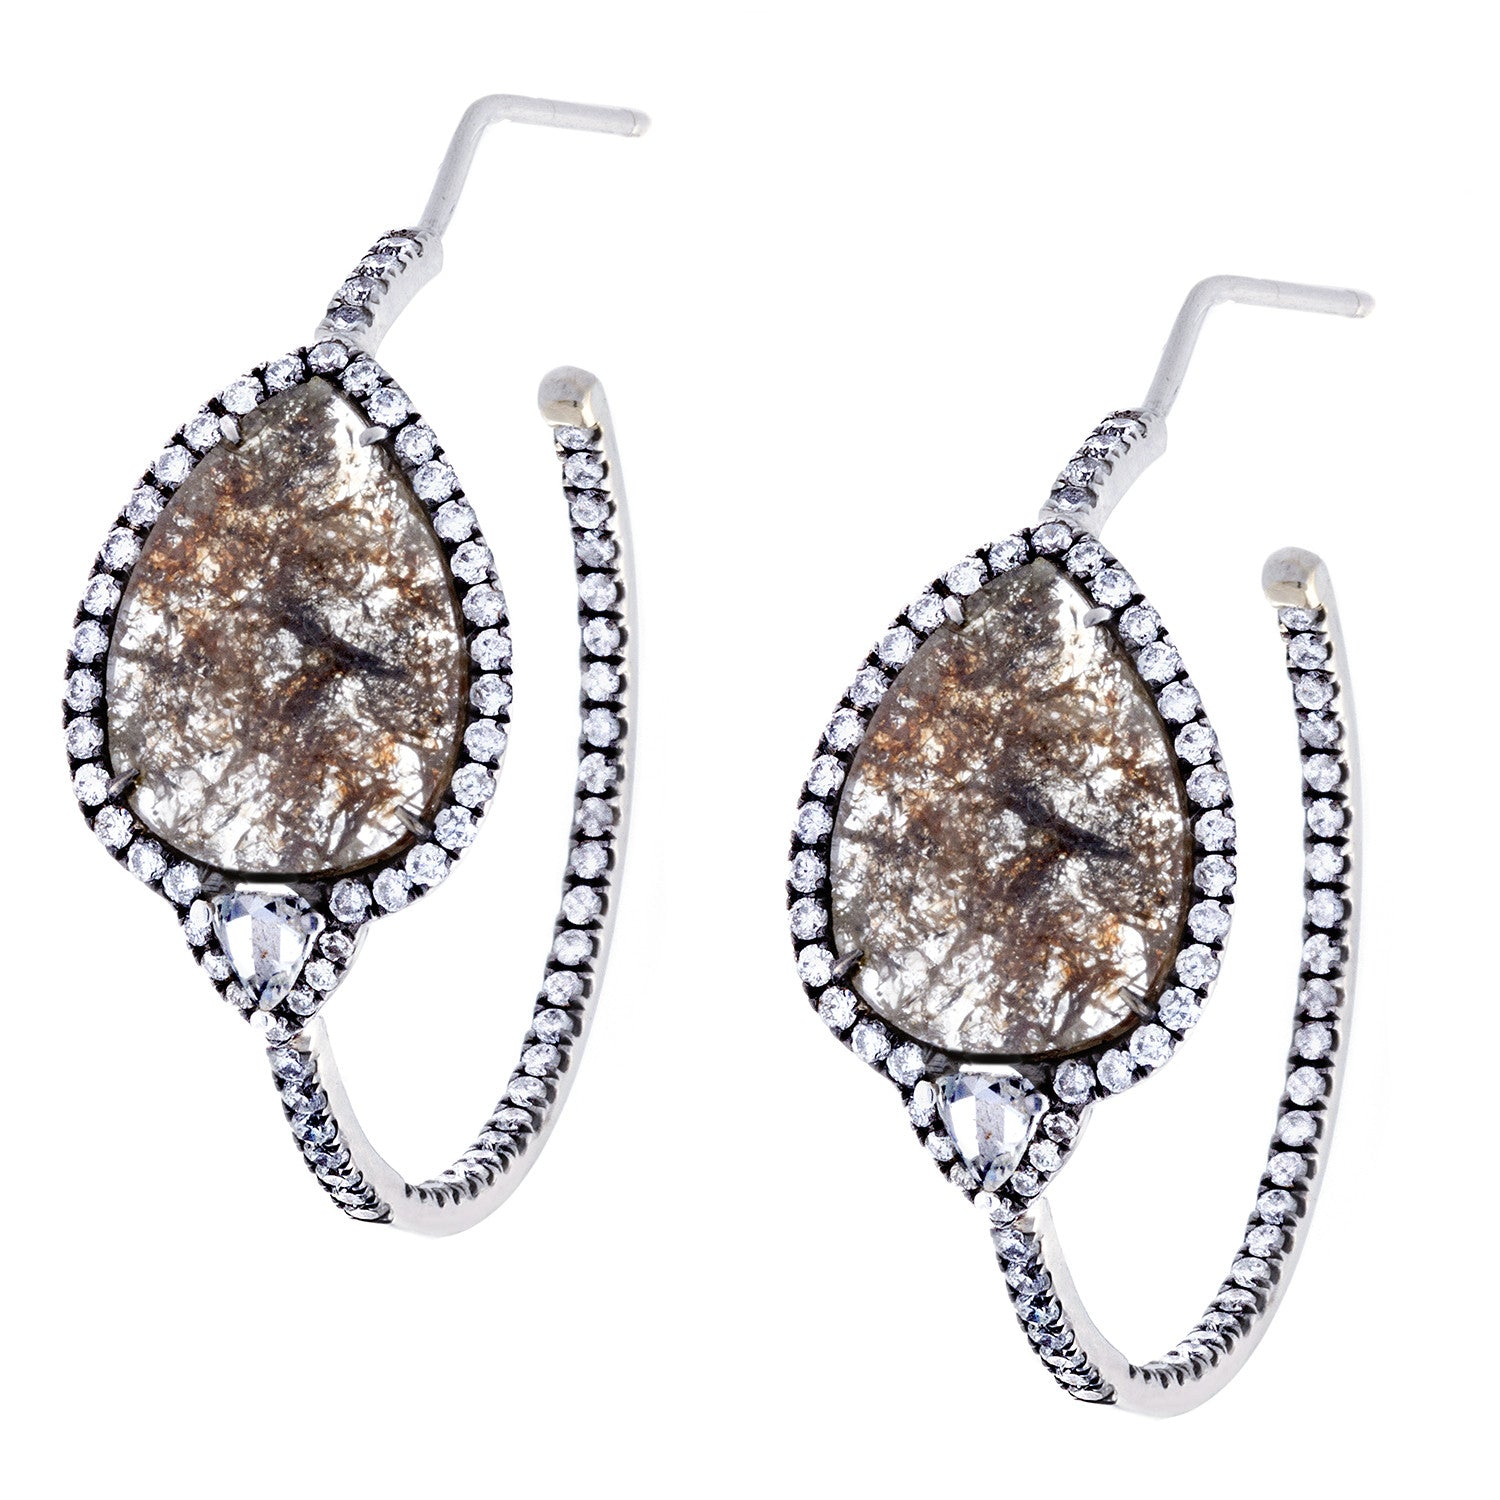 Diamonds & 18K White Gold Hoop Earrings